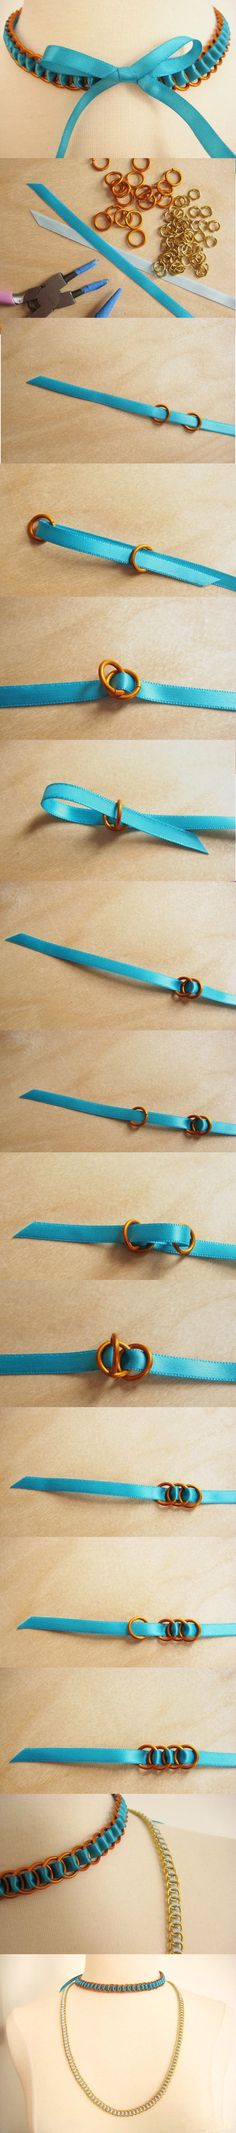 DIY Bracelet diy crafts craft ideas easy crafts diy ideas crafty easy diy diy jewelry craft necklace diy necklace jewelry diy craft chocker diy choker